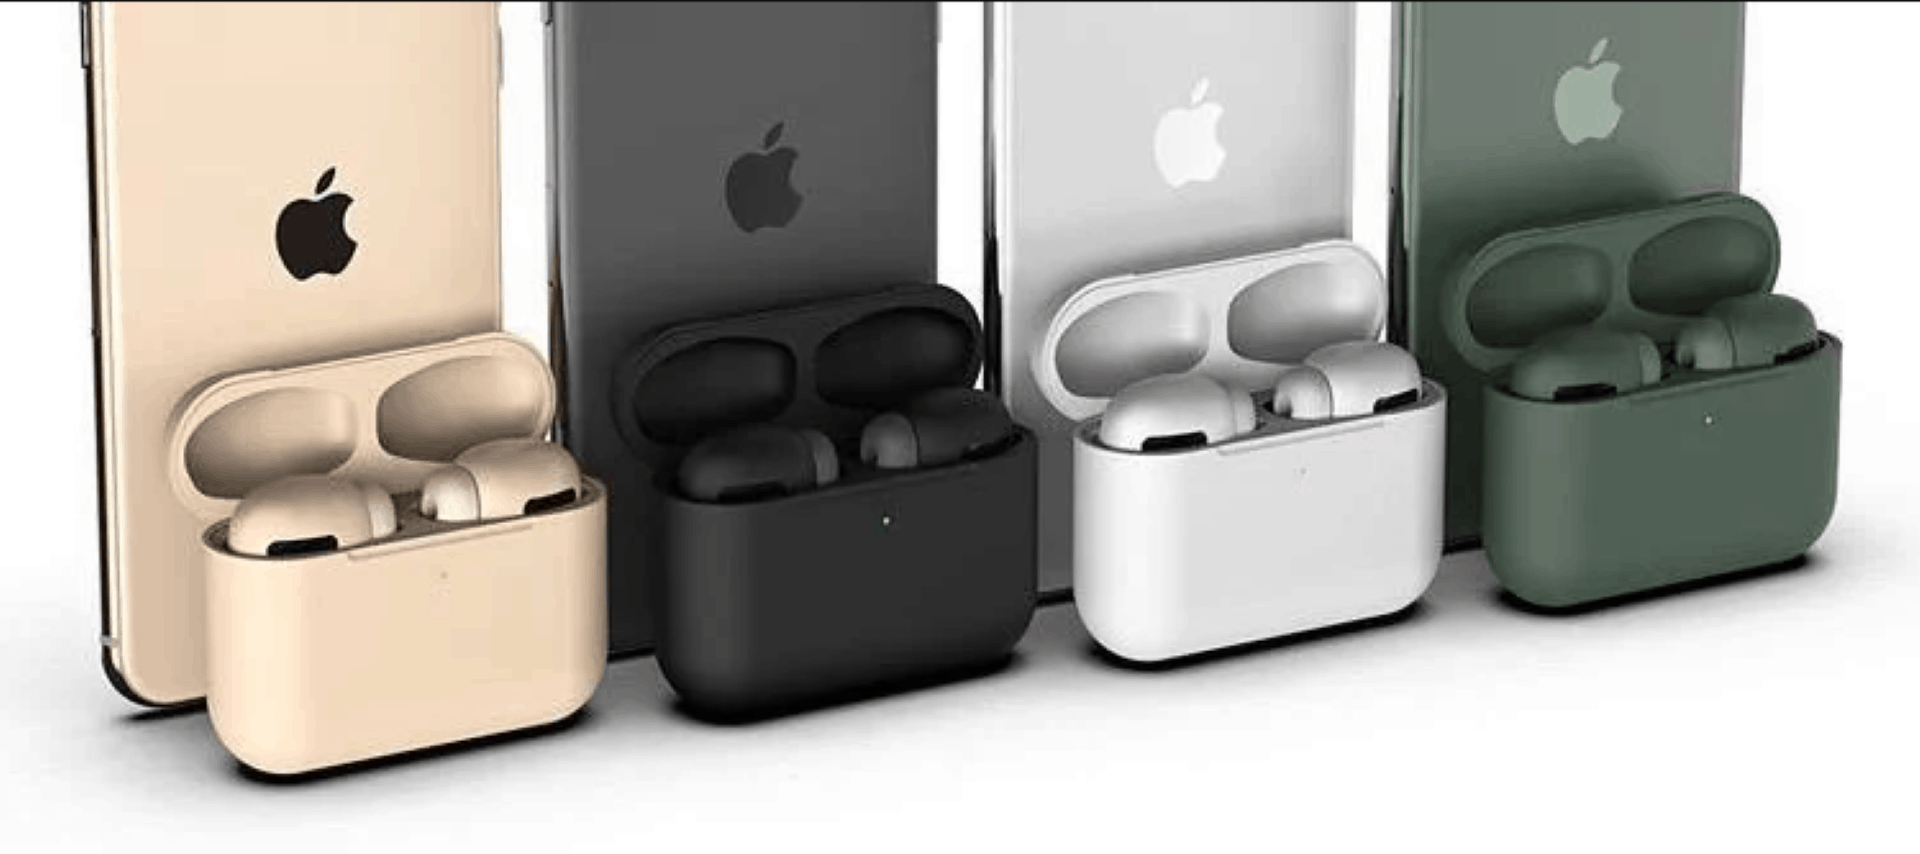 Apple AirPods Pro rumoured to have active noise cancellation and rubber ear tips could cost $260